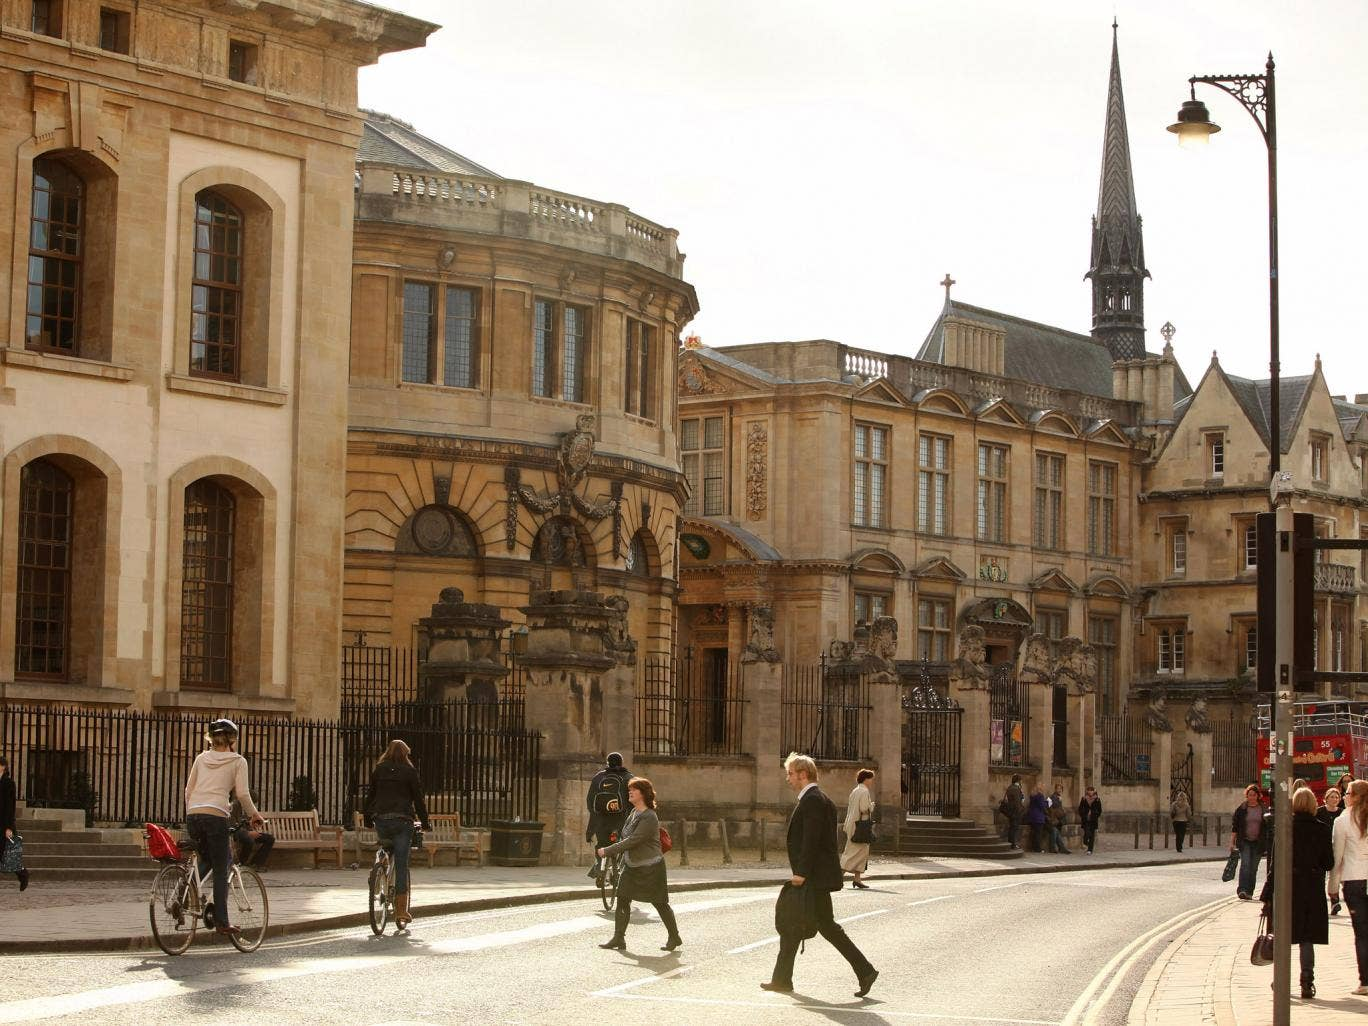 The average property in Oxford costs £340,864